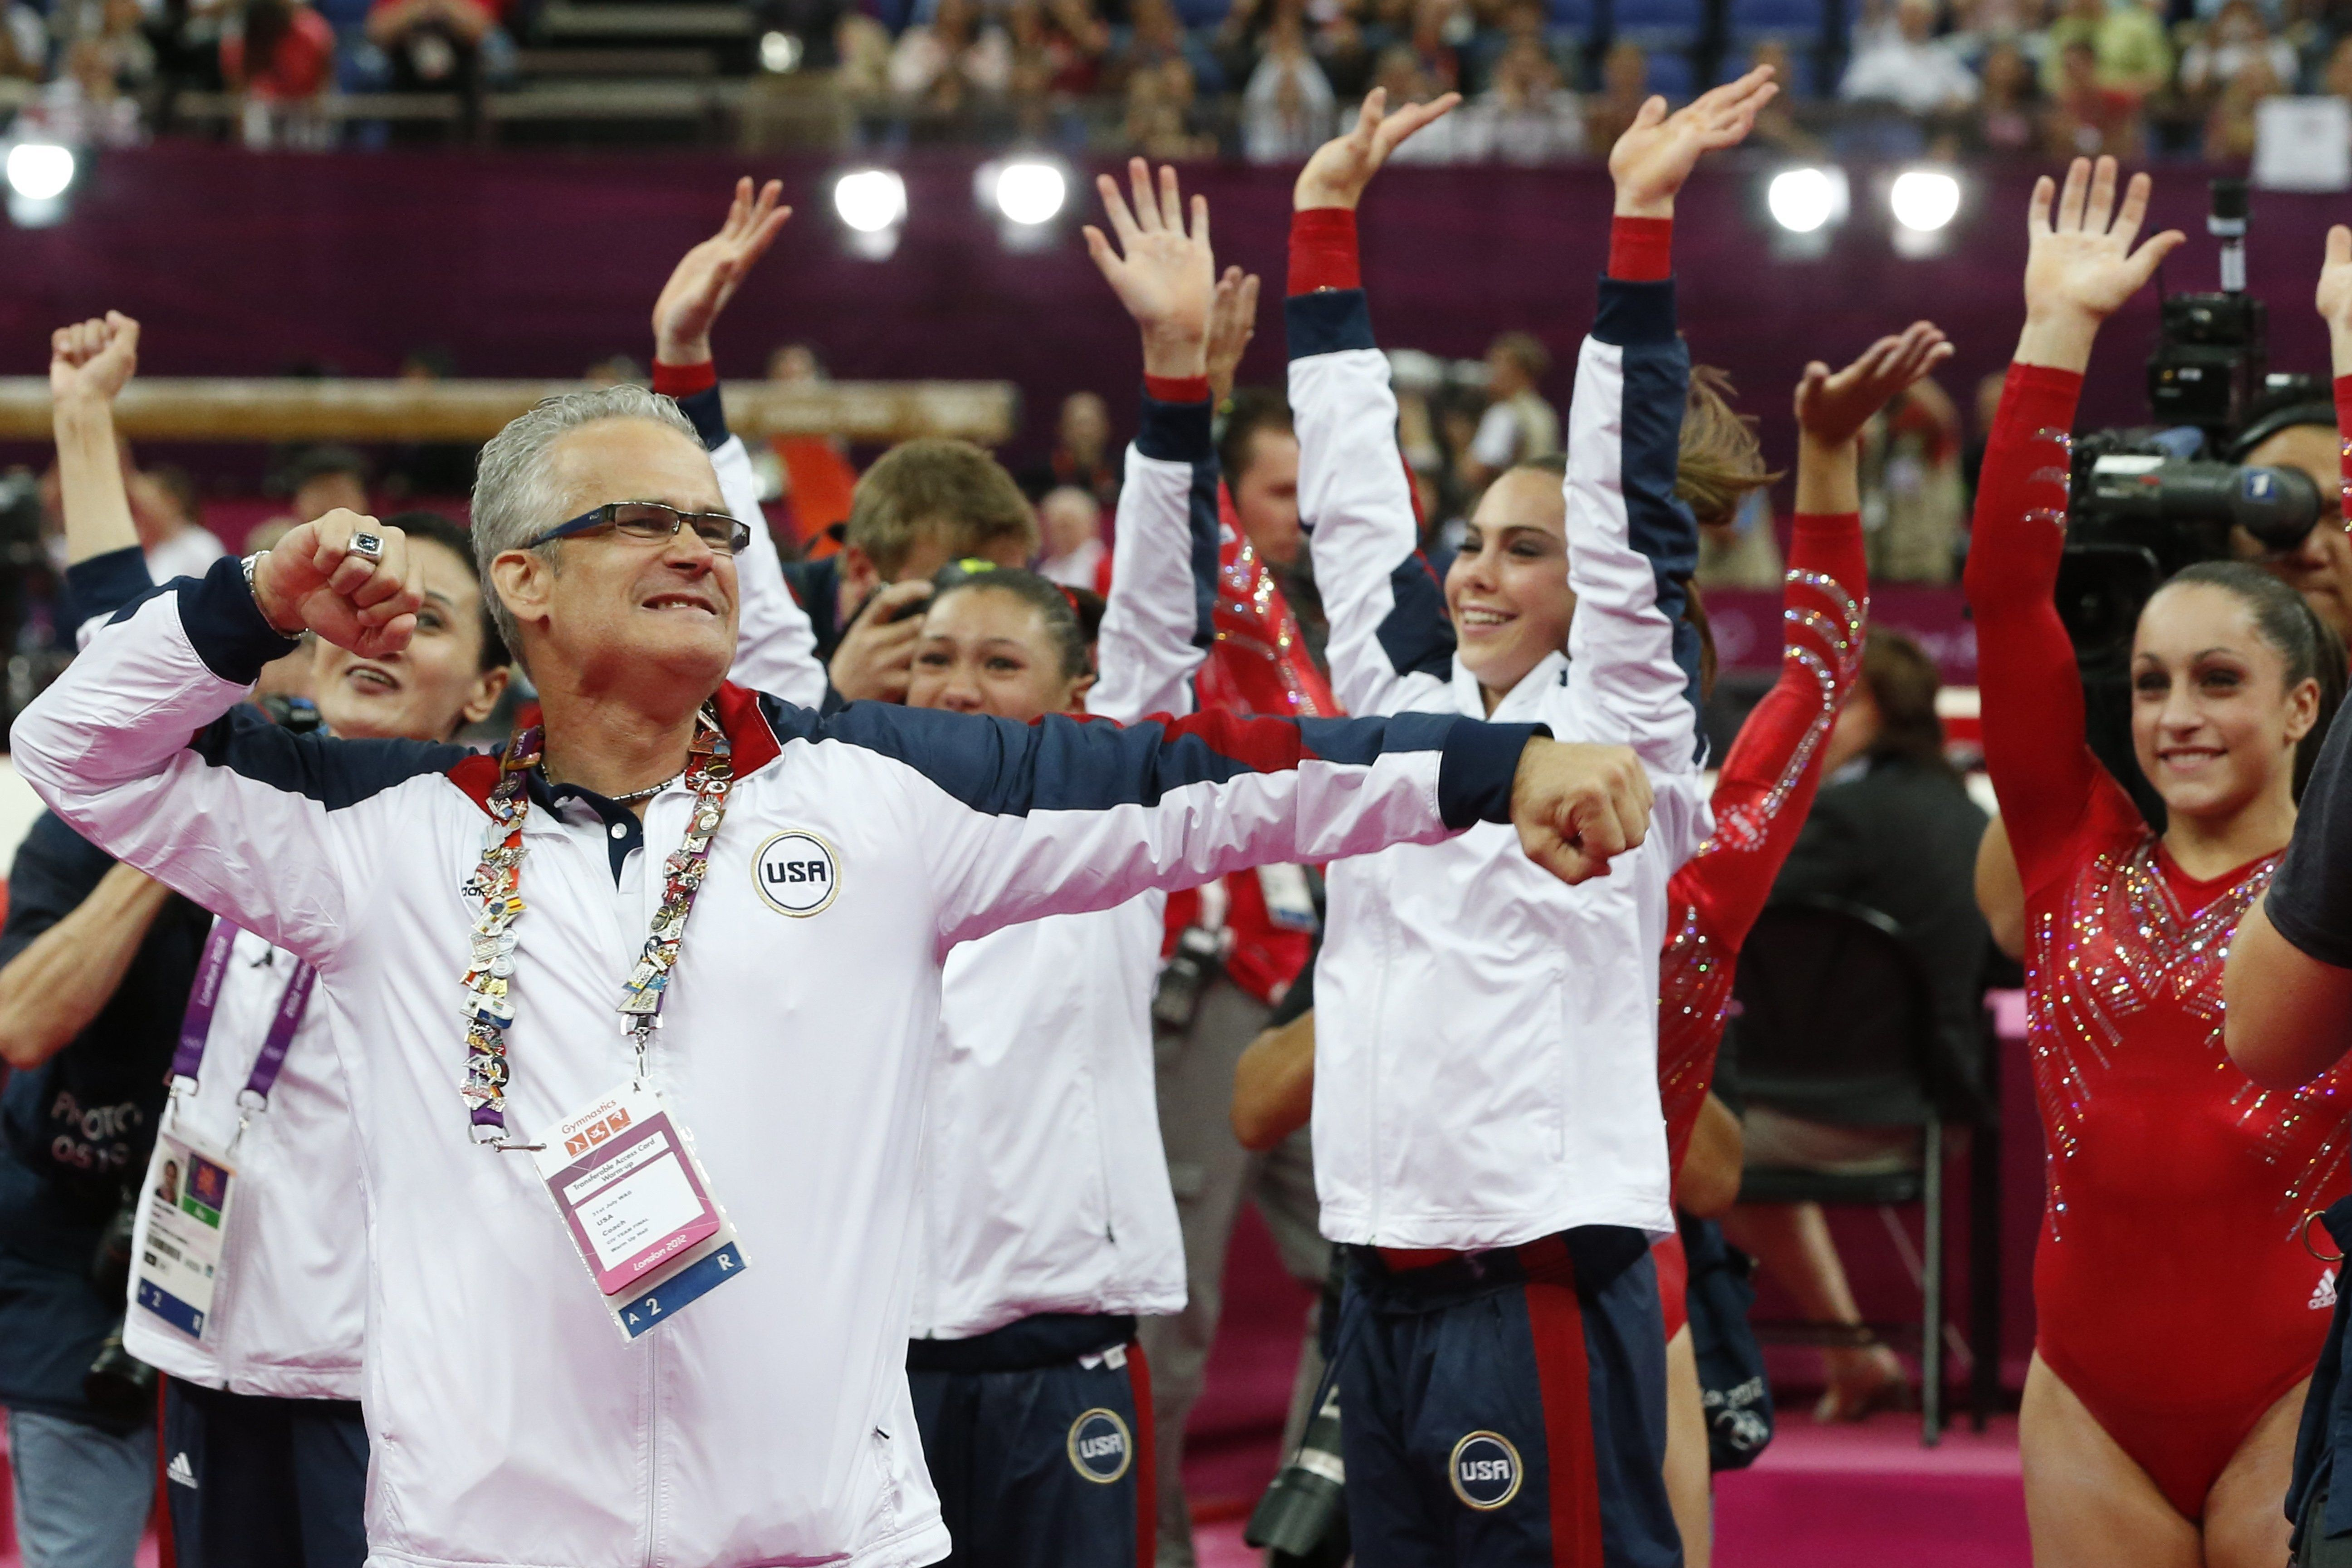 US women gymnastics team John Geddert celebrates with the team after the US  won gold in the women's team of the artistic gymnastics event of the London Olympic Games on July 31, 2012 at the 02 North Greenwich Arena in London. Team US won gold, Team Russia took silver and Team Romania got bronze.  AFP PHOTO / THOMAS COEX        (Photo credit should read THOMAS COEX/AFP/GettyImages)